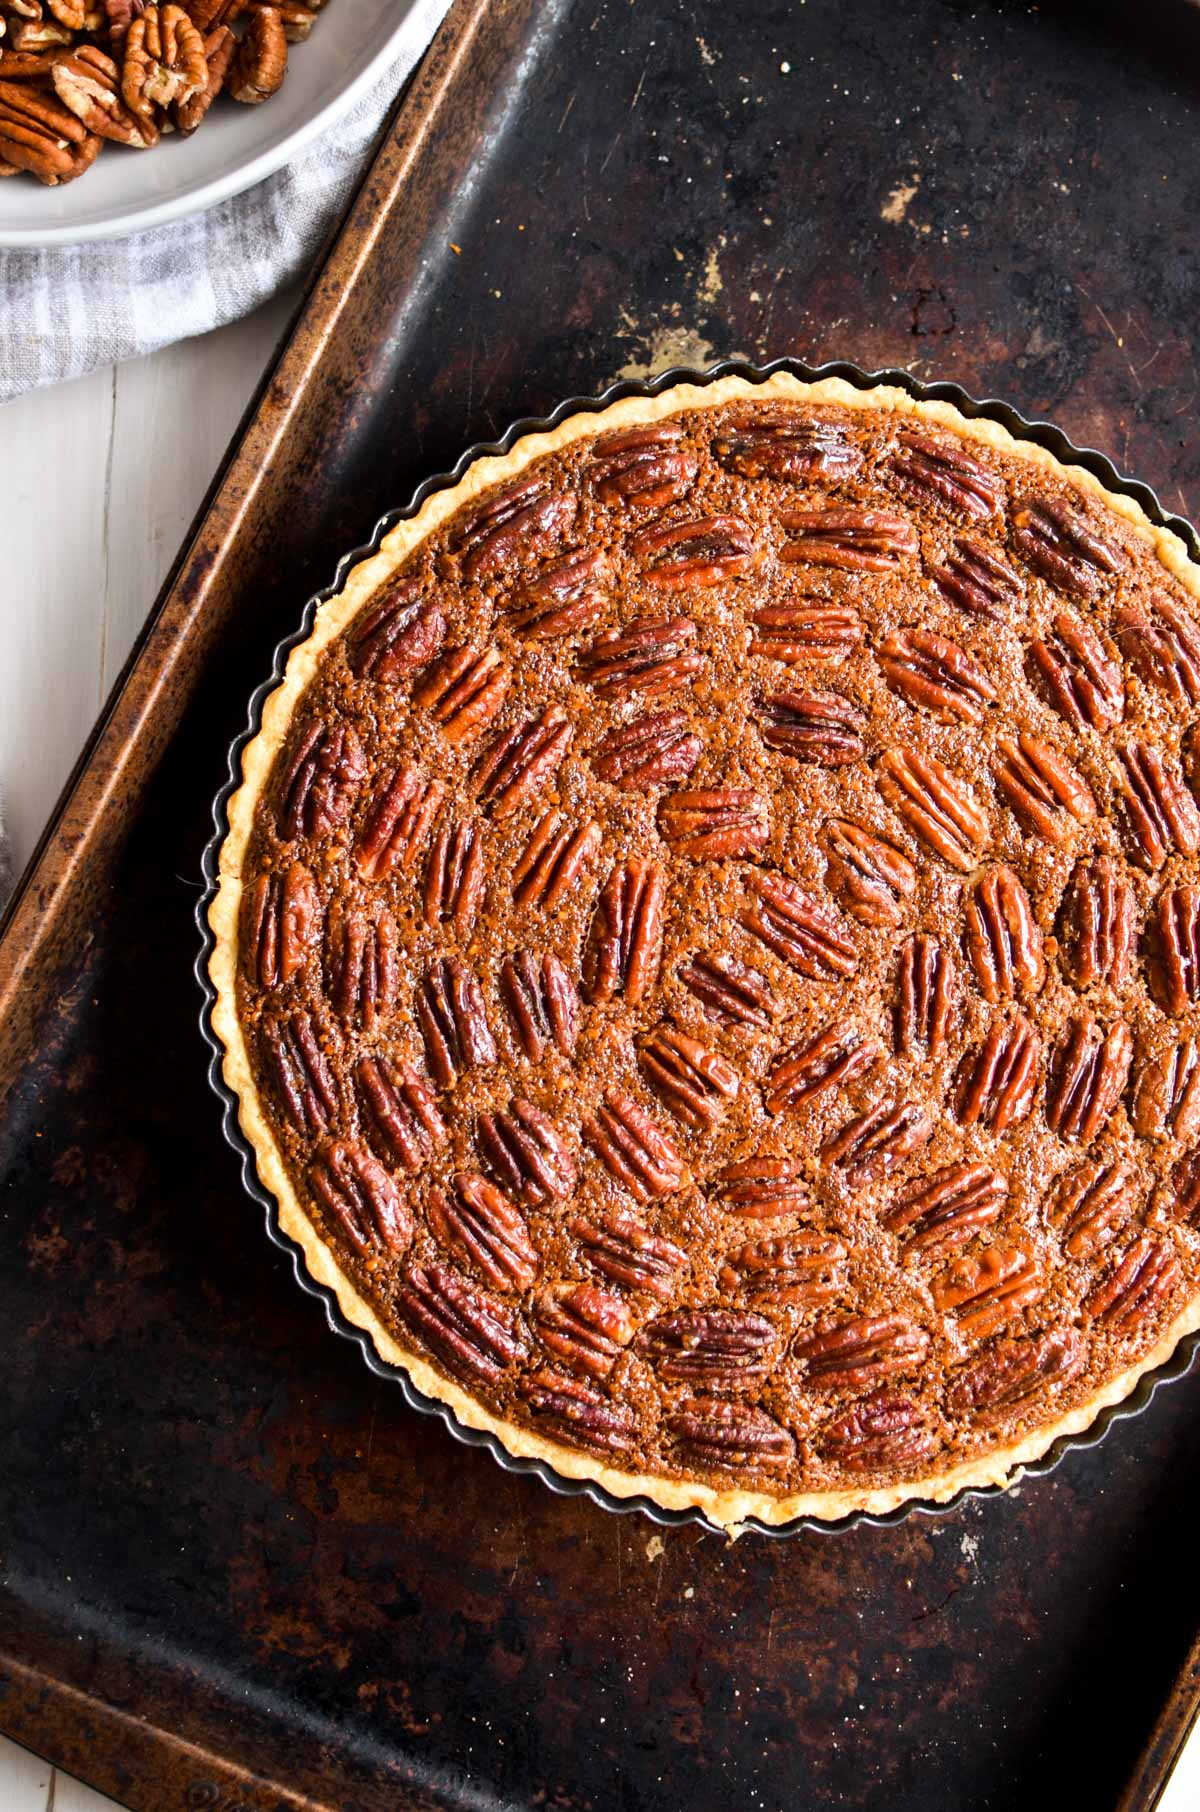 Maple frangipane pecan pie on a rusty baking sheet